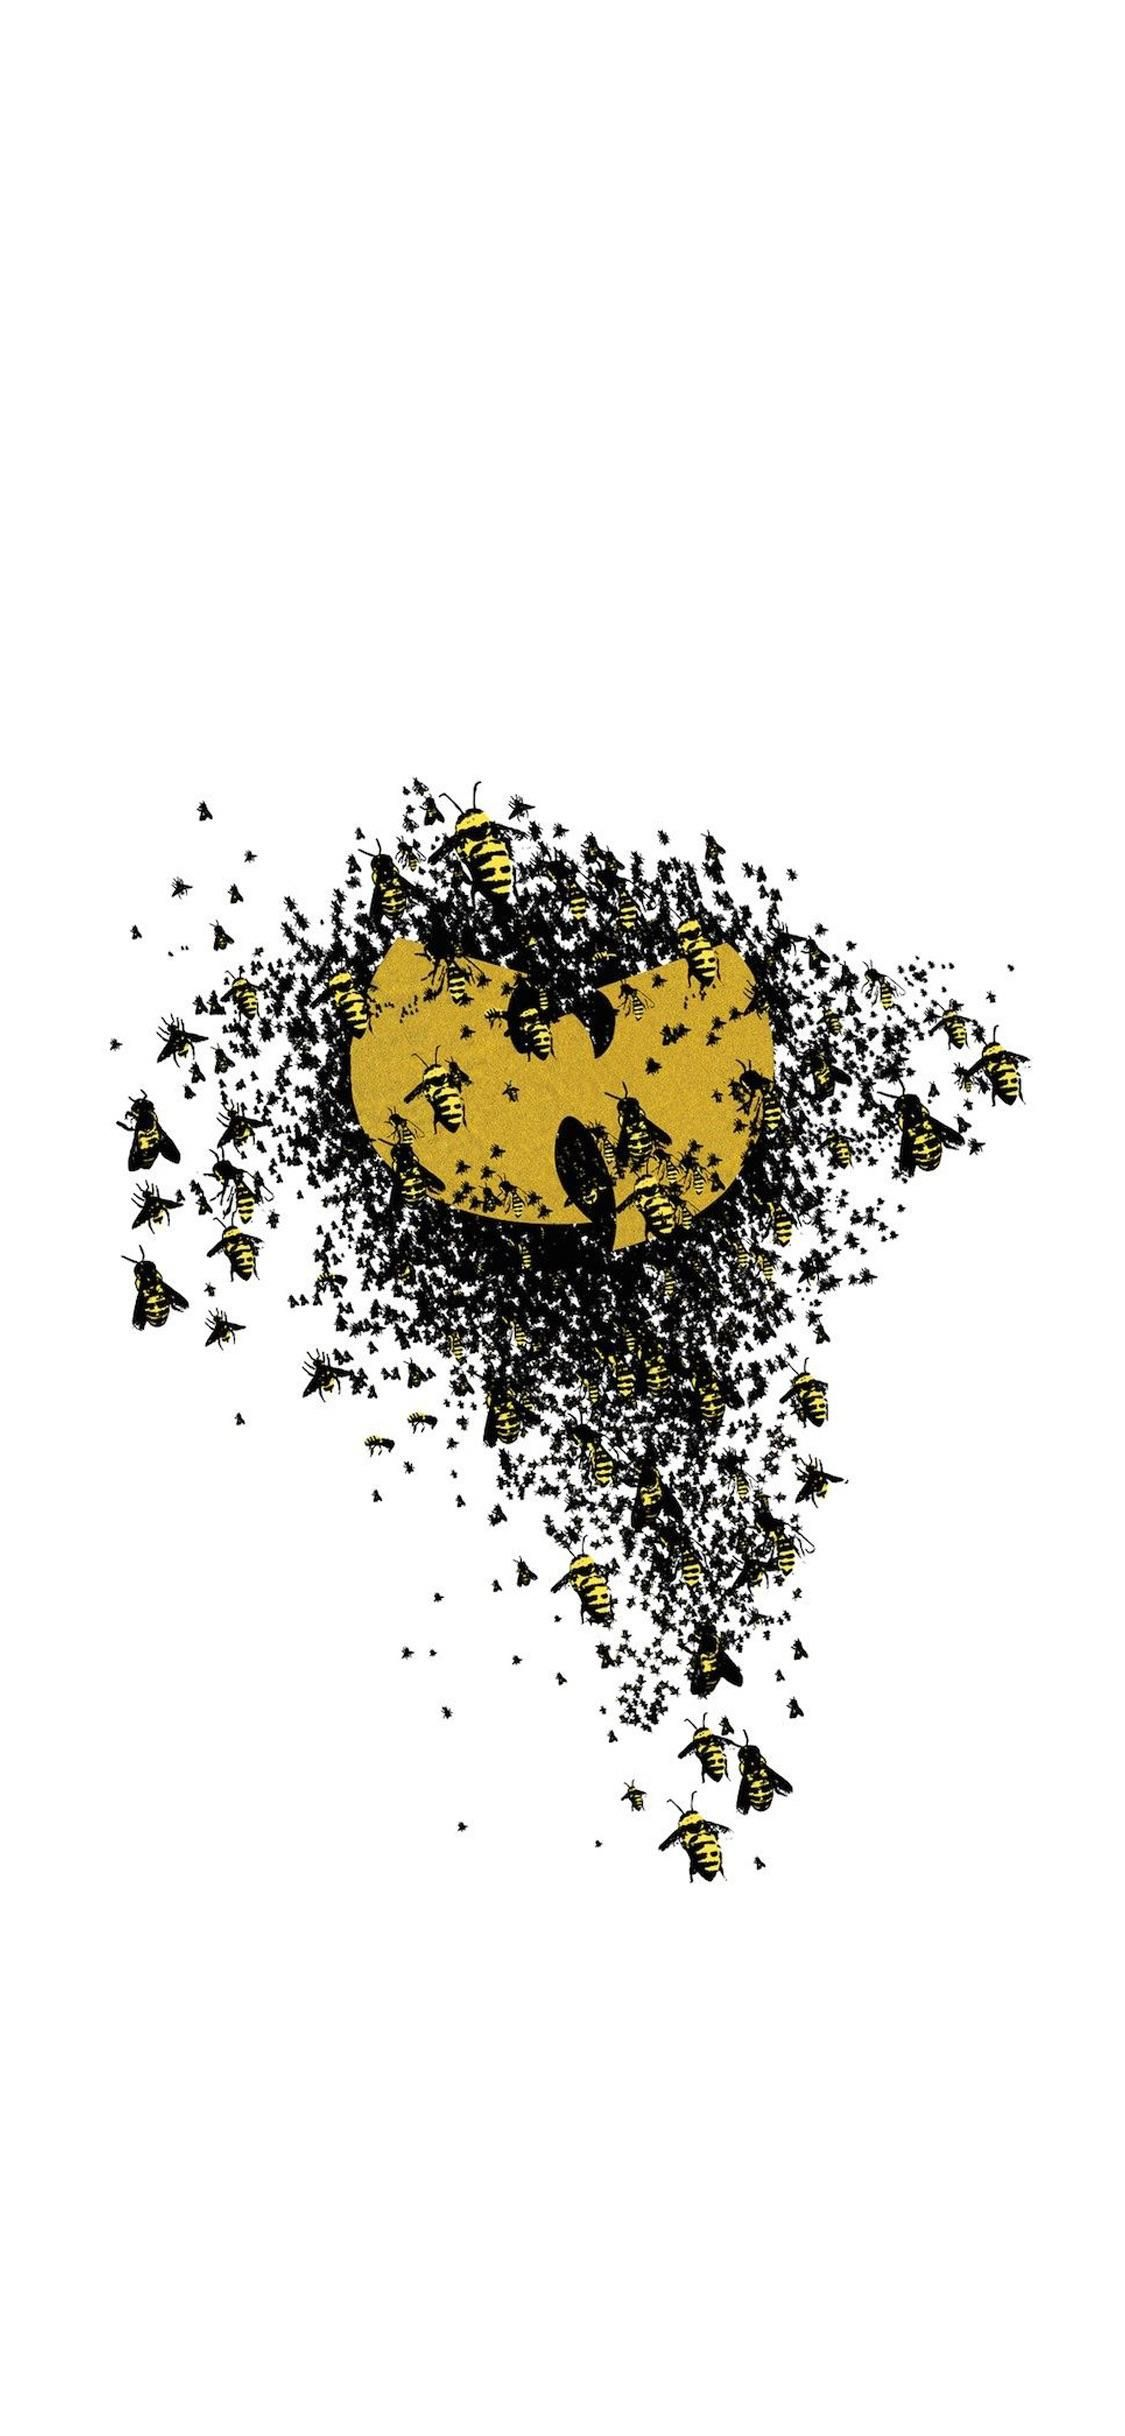 Wu Tang Art Cropped Chopped And Edited For The Iphone Xs Max Feel Free To Save And Iphone Wallpaper Hd Original Iphone Wallpaper Iphone Wallpaper Pinterest